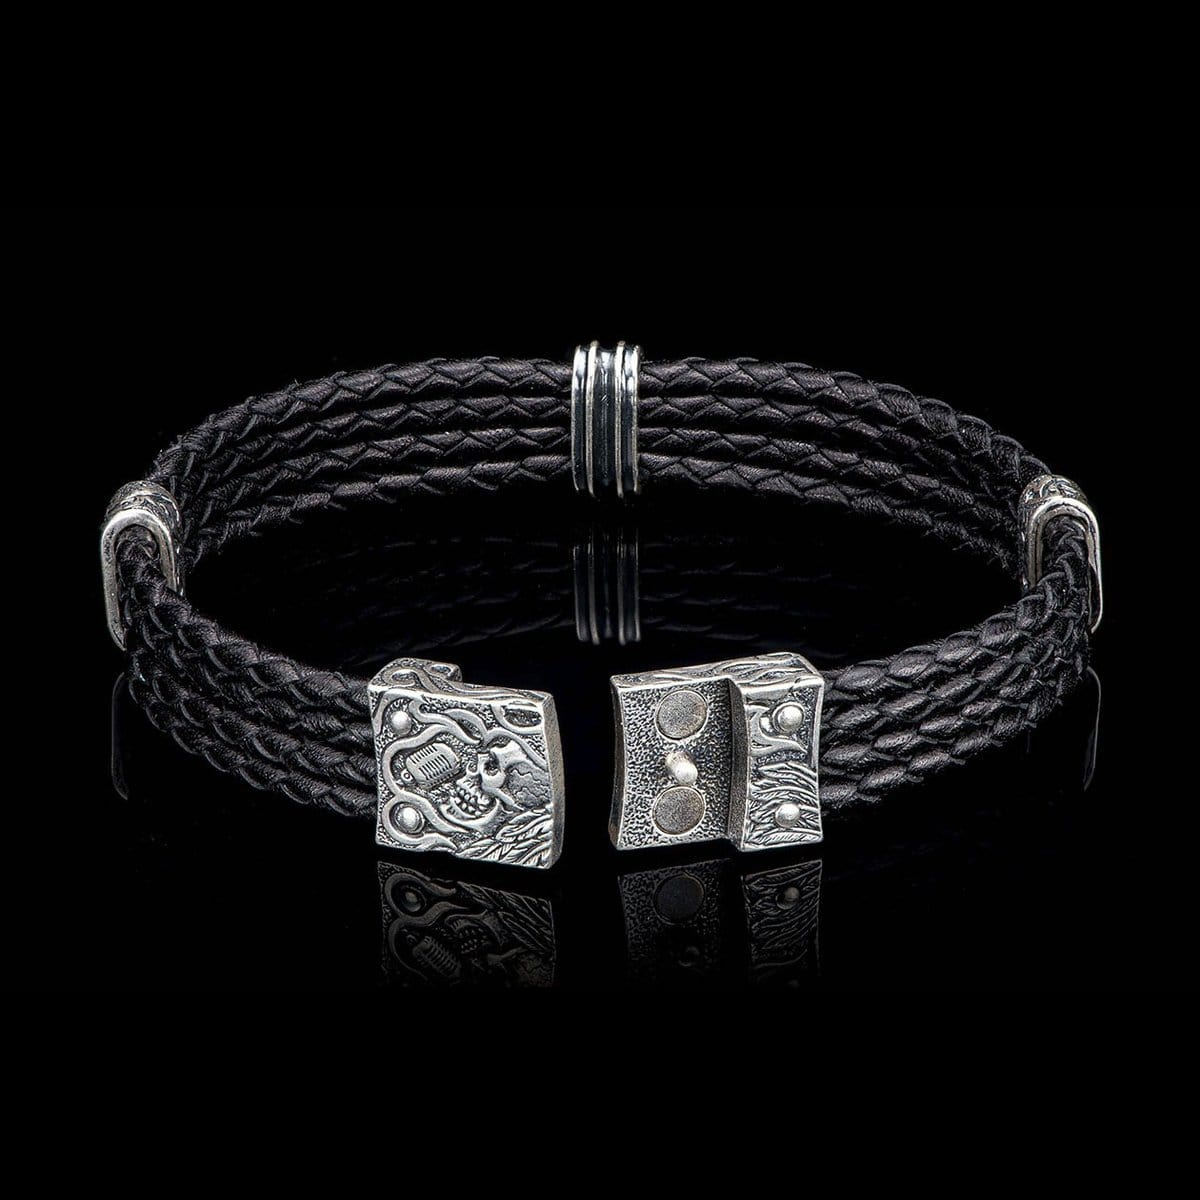 Men's Free Bird Bracelet - LC197 RRS BLK-William Henry-Renee Taylor Gallery